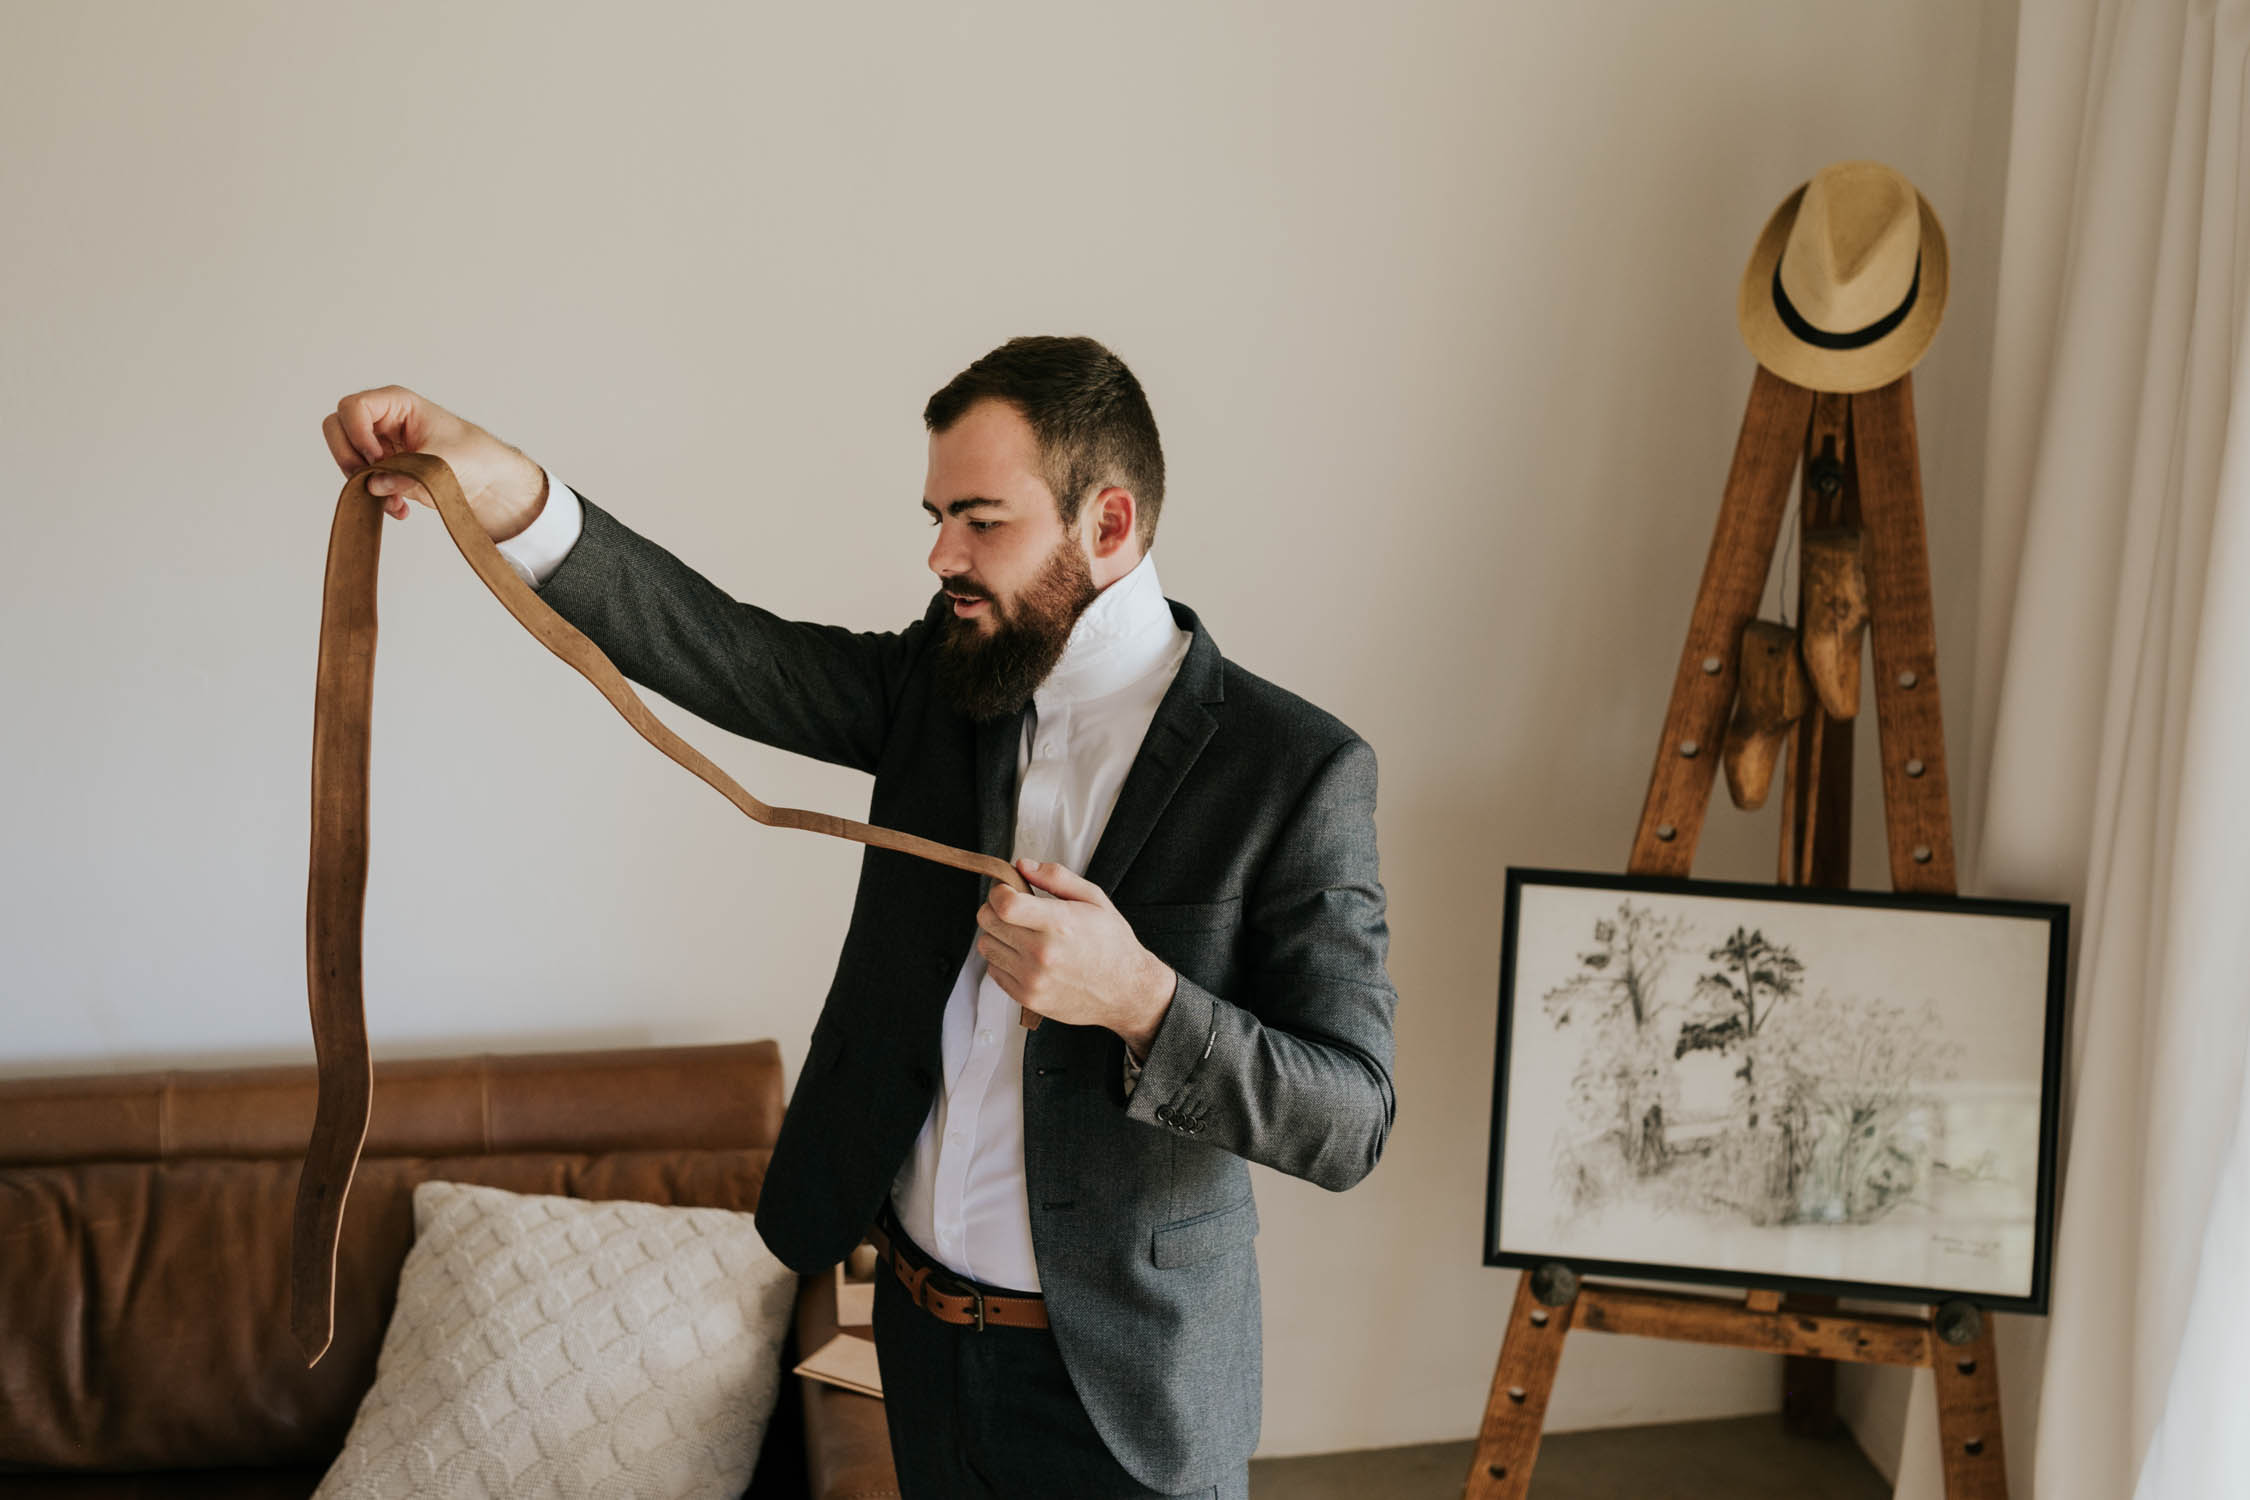 Groom gets dressed for his wedding in a stylish outfit consisting of a grey Tiger of Sweden jacket, leather tie and white shirt